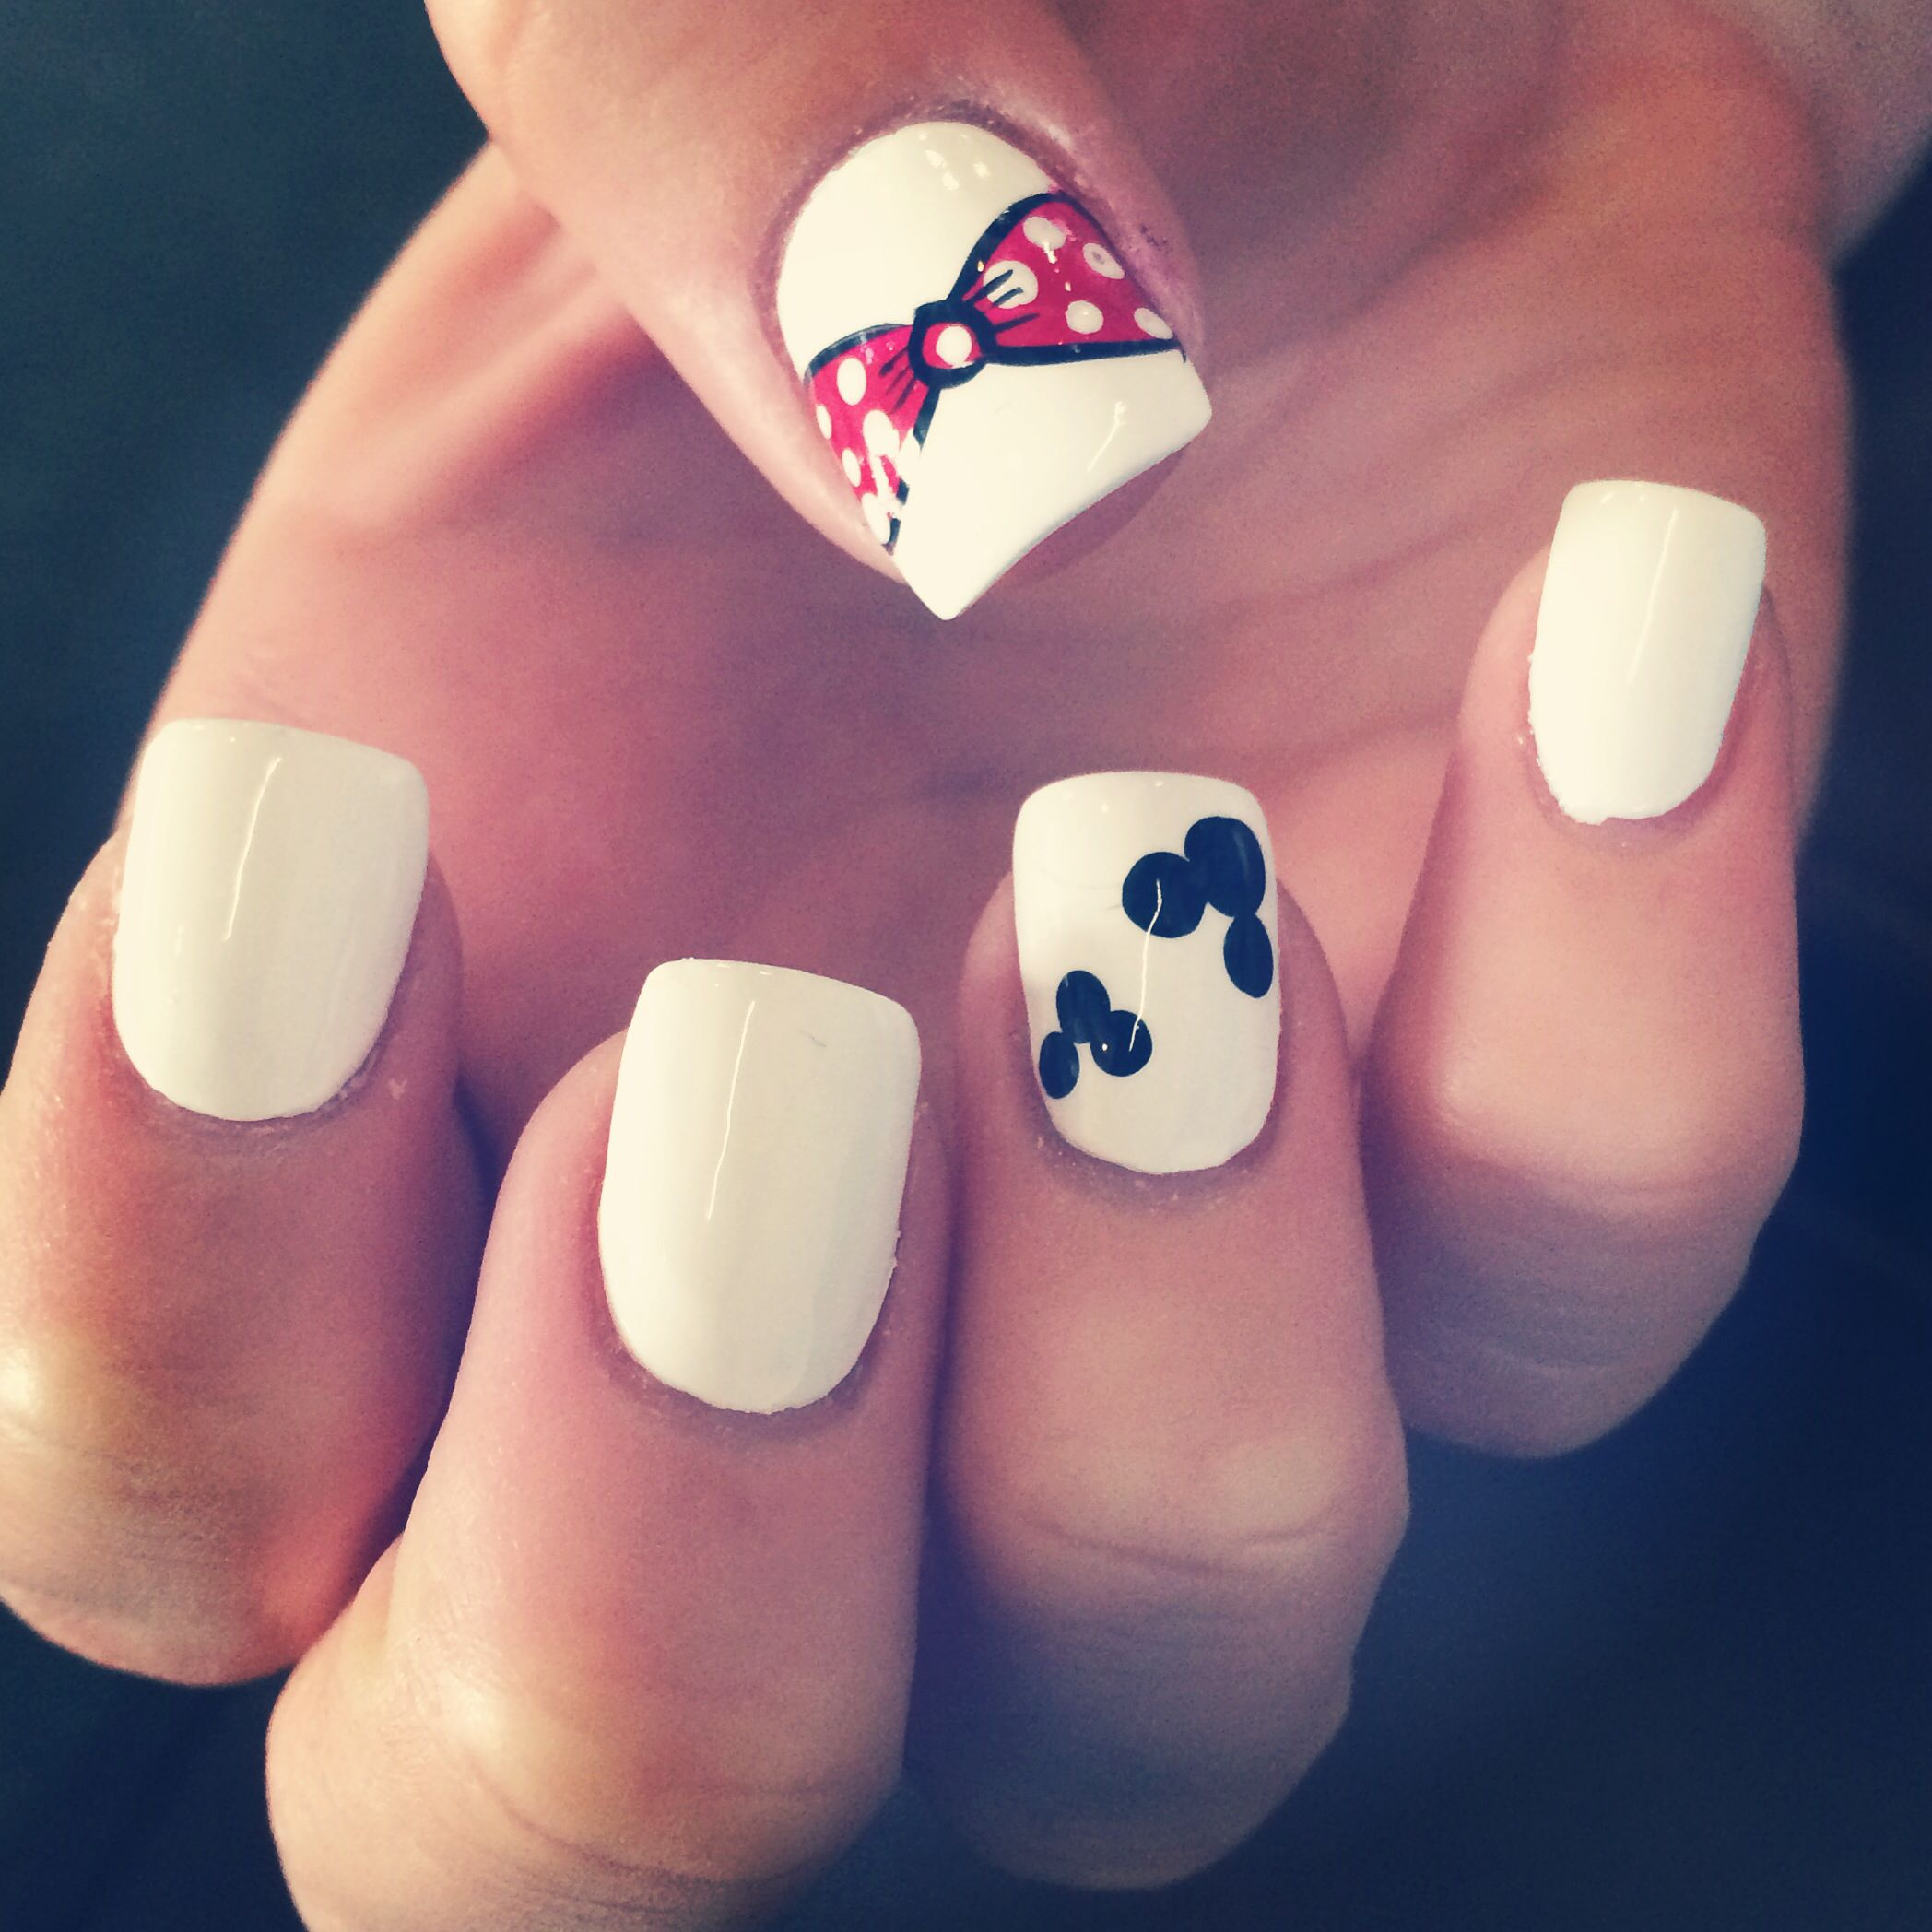 Disneyland nails! | beauty | Pinterest | Disneyland nails ...